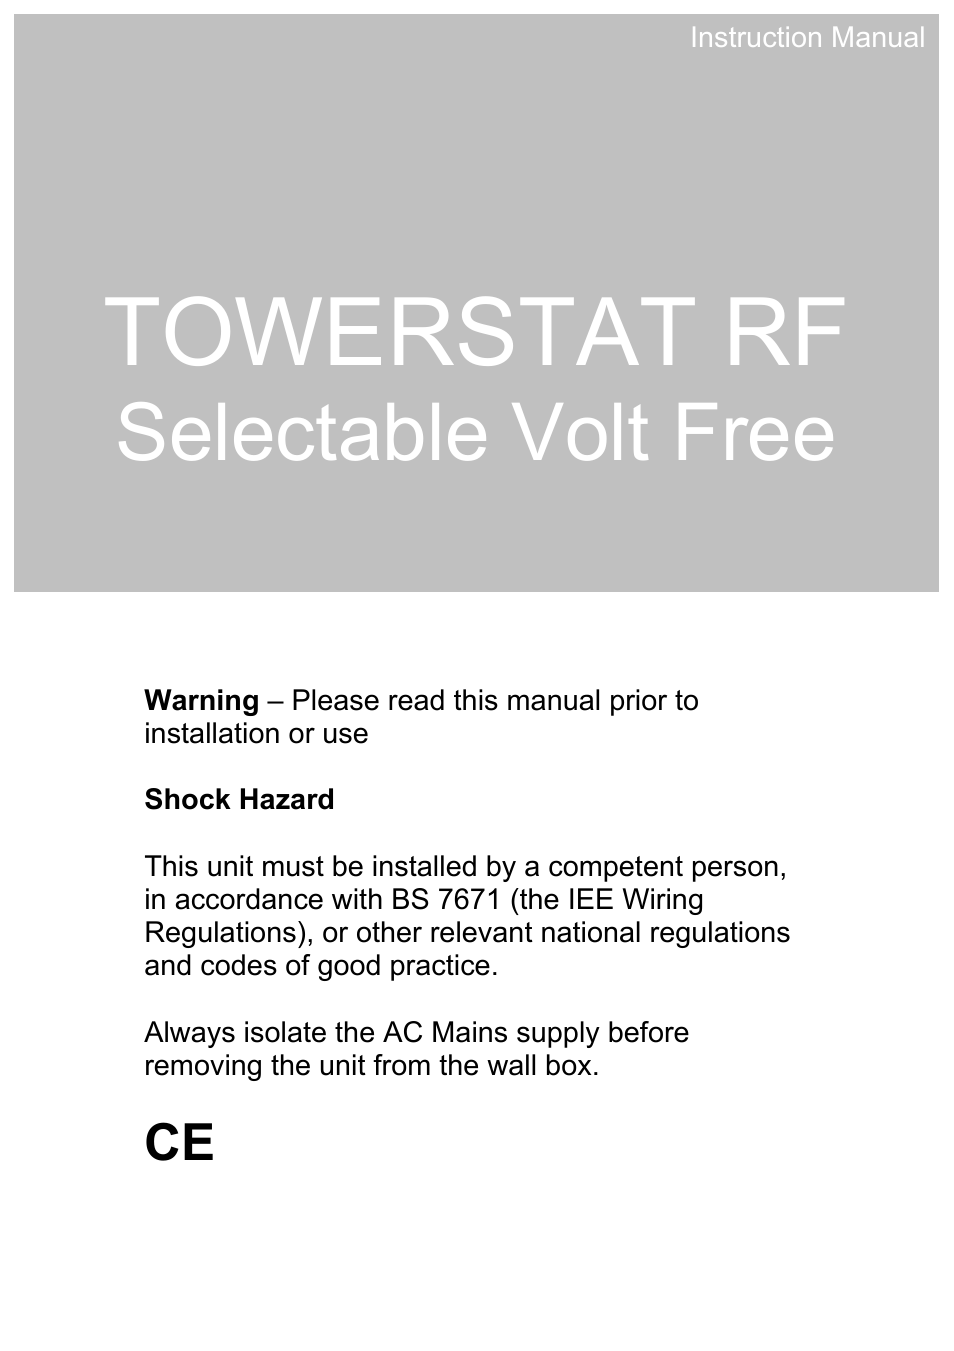 Tfc Group Sttr F User Manual 19 Pages Bs7671 Wiring Regulations